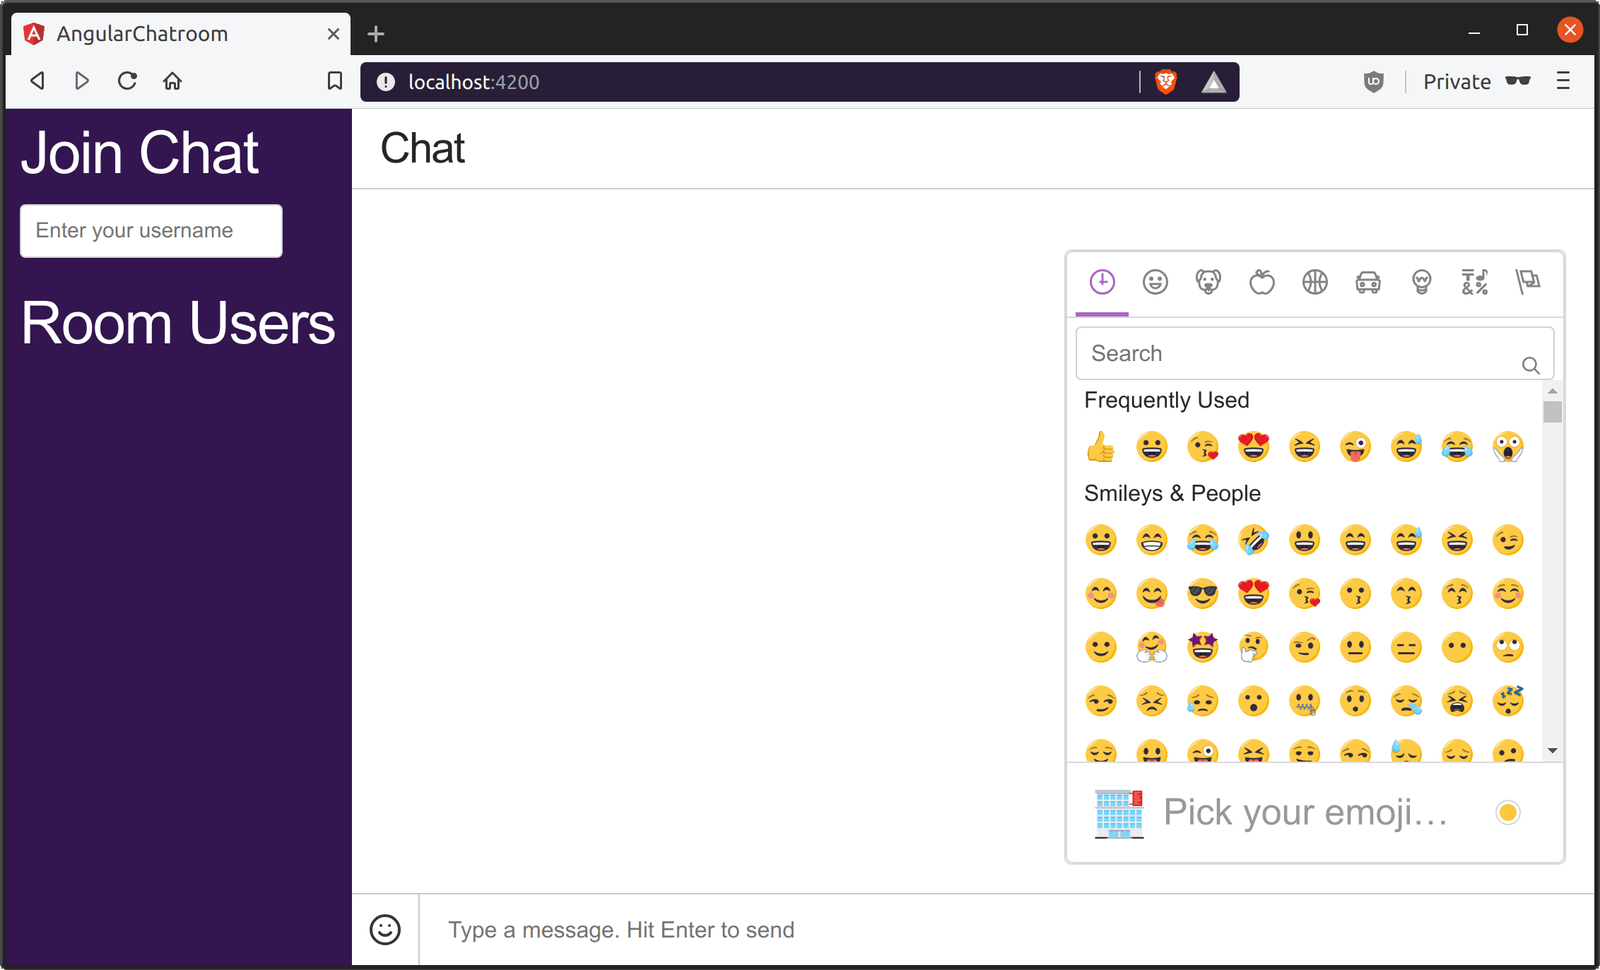 Add emoji, GIFs and link previews to an Angular 7 chatroom